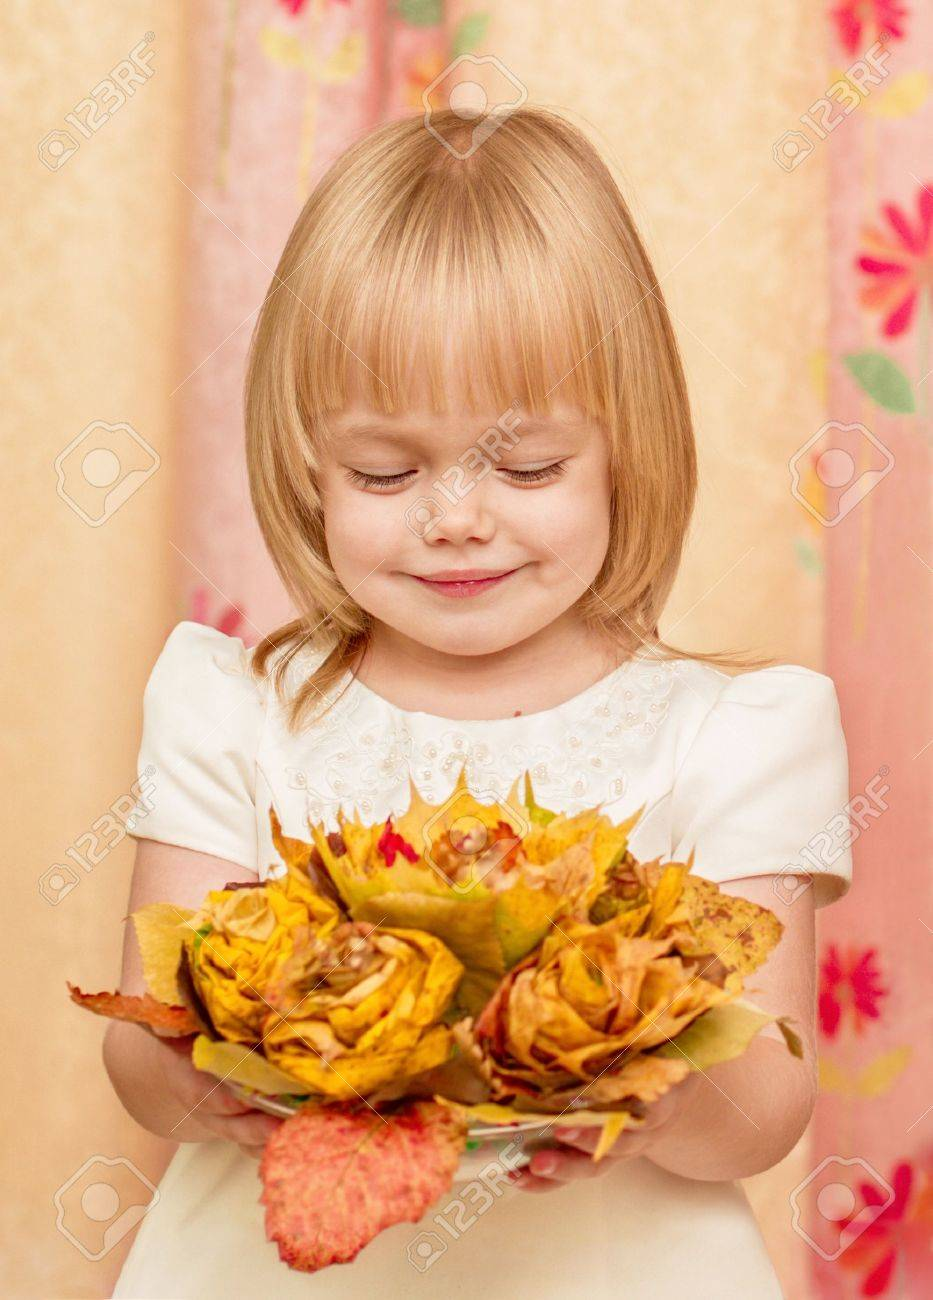 The little girl looks at the bouquet of autumn leaves Stock Photo - 15738537